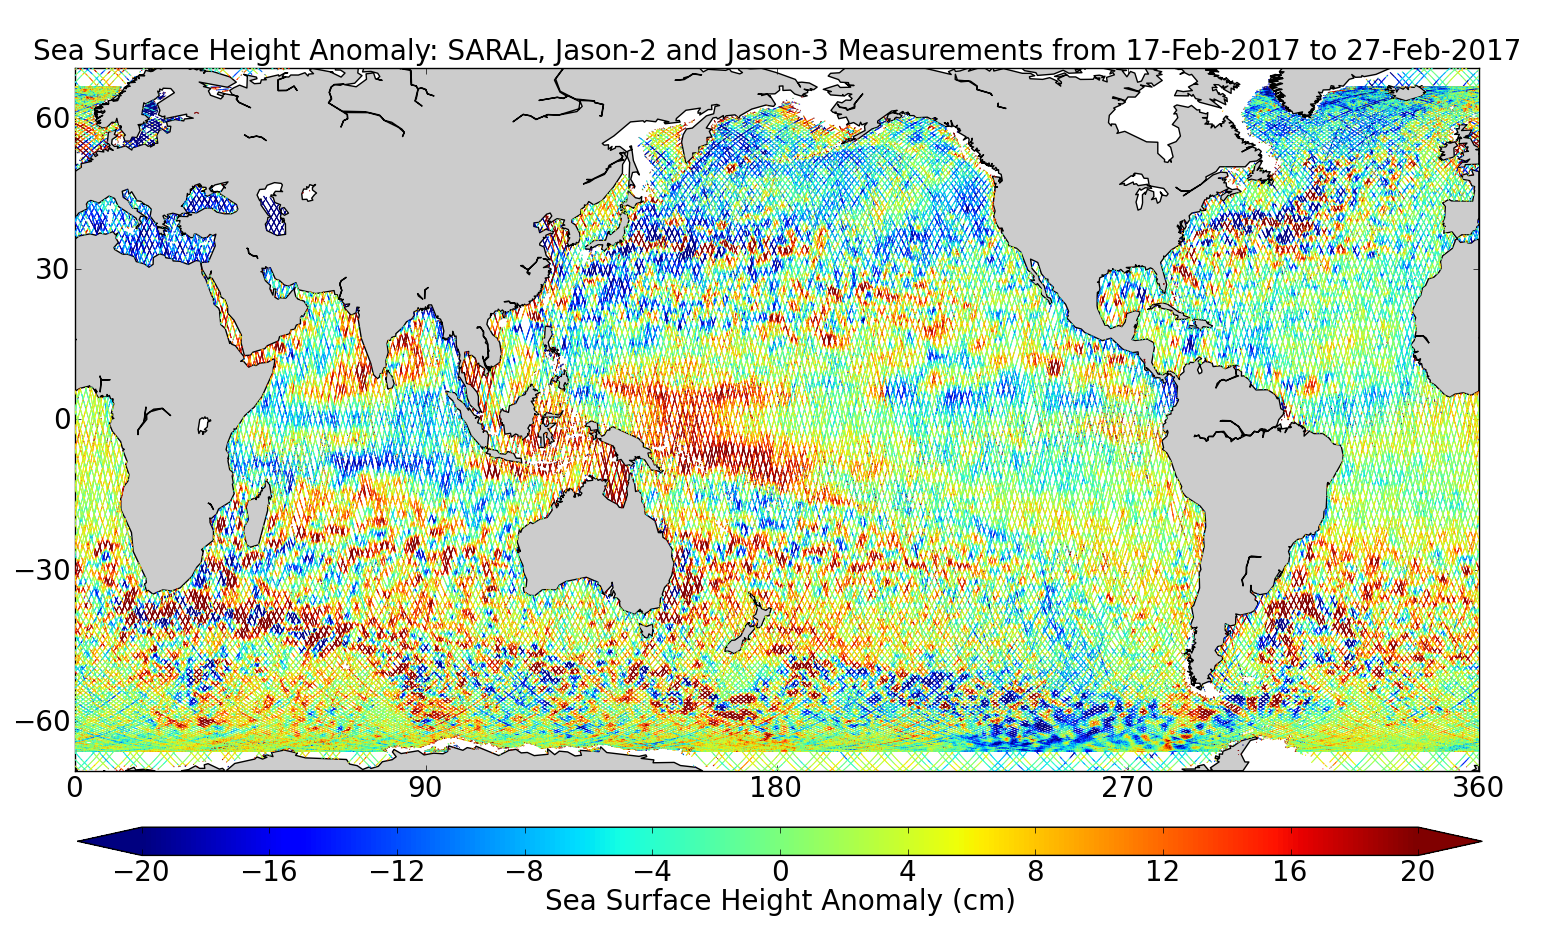 Sea Surface Height Anomaly: SARAL, Jason-2 and Jason-3 Measurements from 17-Feb-2017 to 27-Feb-2017